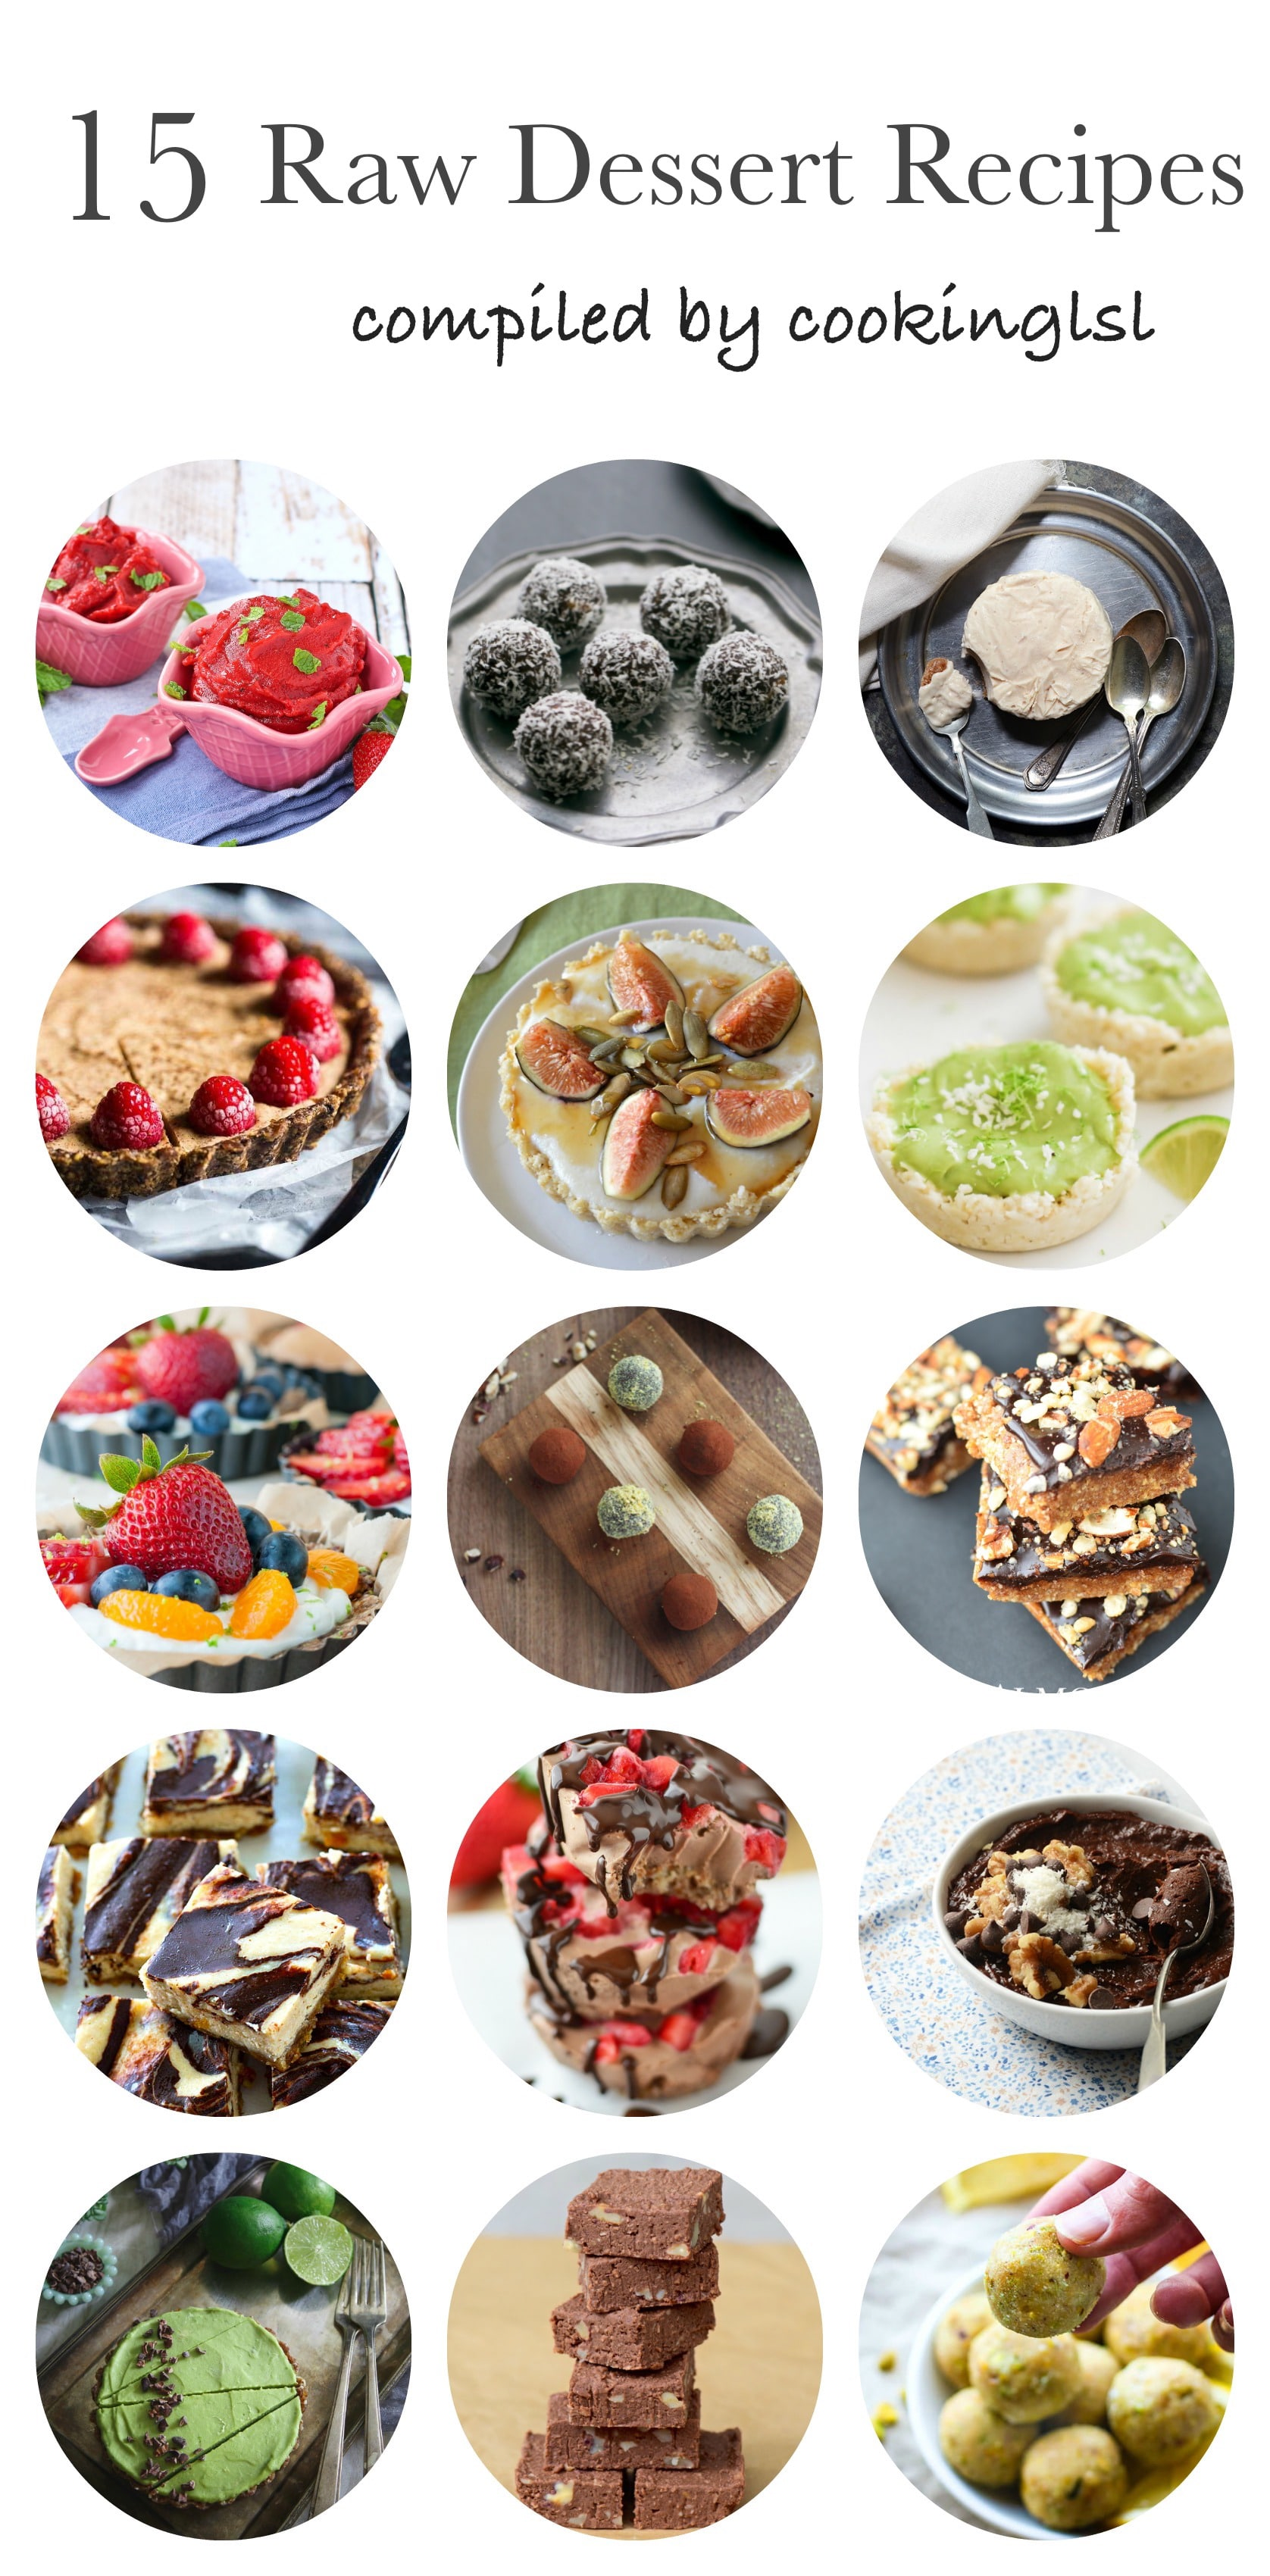 15-raw-dessert-recipes